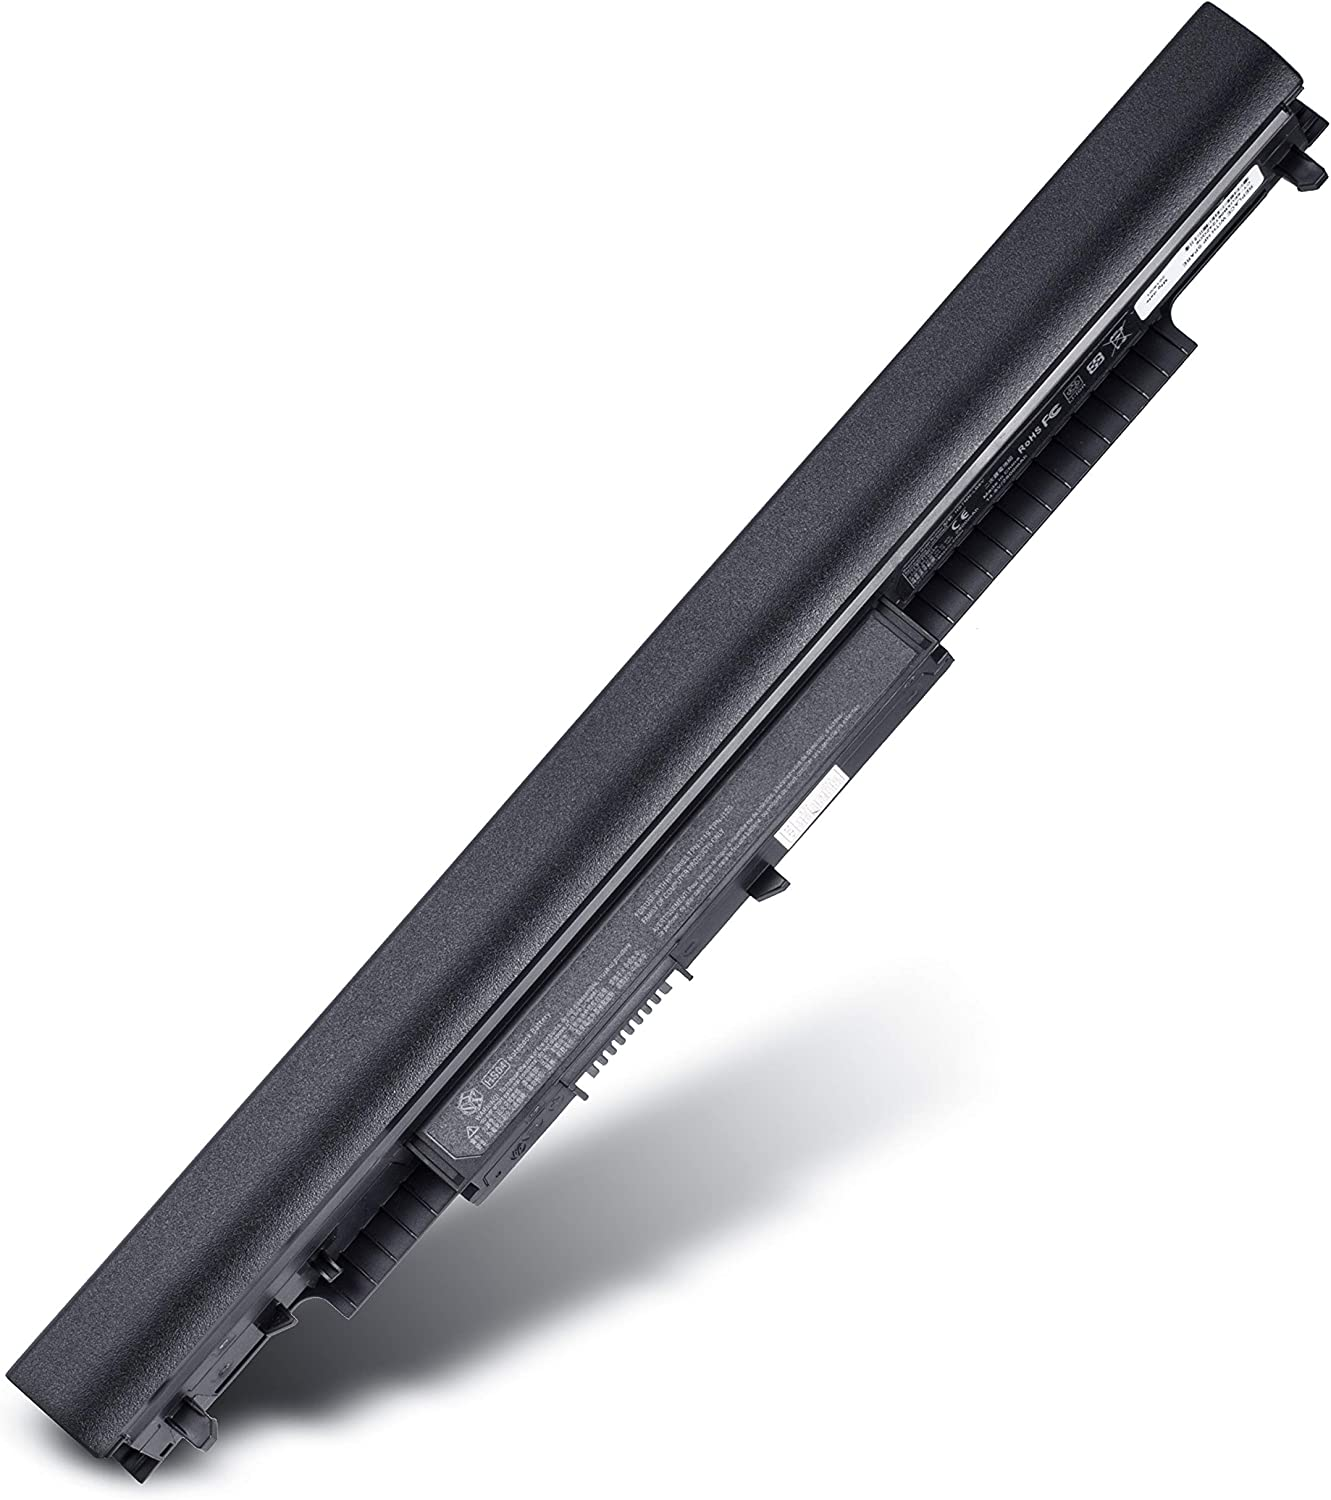 HSX HS03 HS04 Laptop Battery For HP 807956-001 807957-001 HS04 HS03 807612-421 807611-221 240 G4 HSTNN-LB6U HSTNN-DB7I HSTNN-LB6V TPN-I119 807611-421 807611-131 – High Performance [2800mAh/14.8V/41Wh]